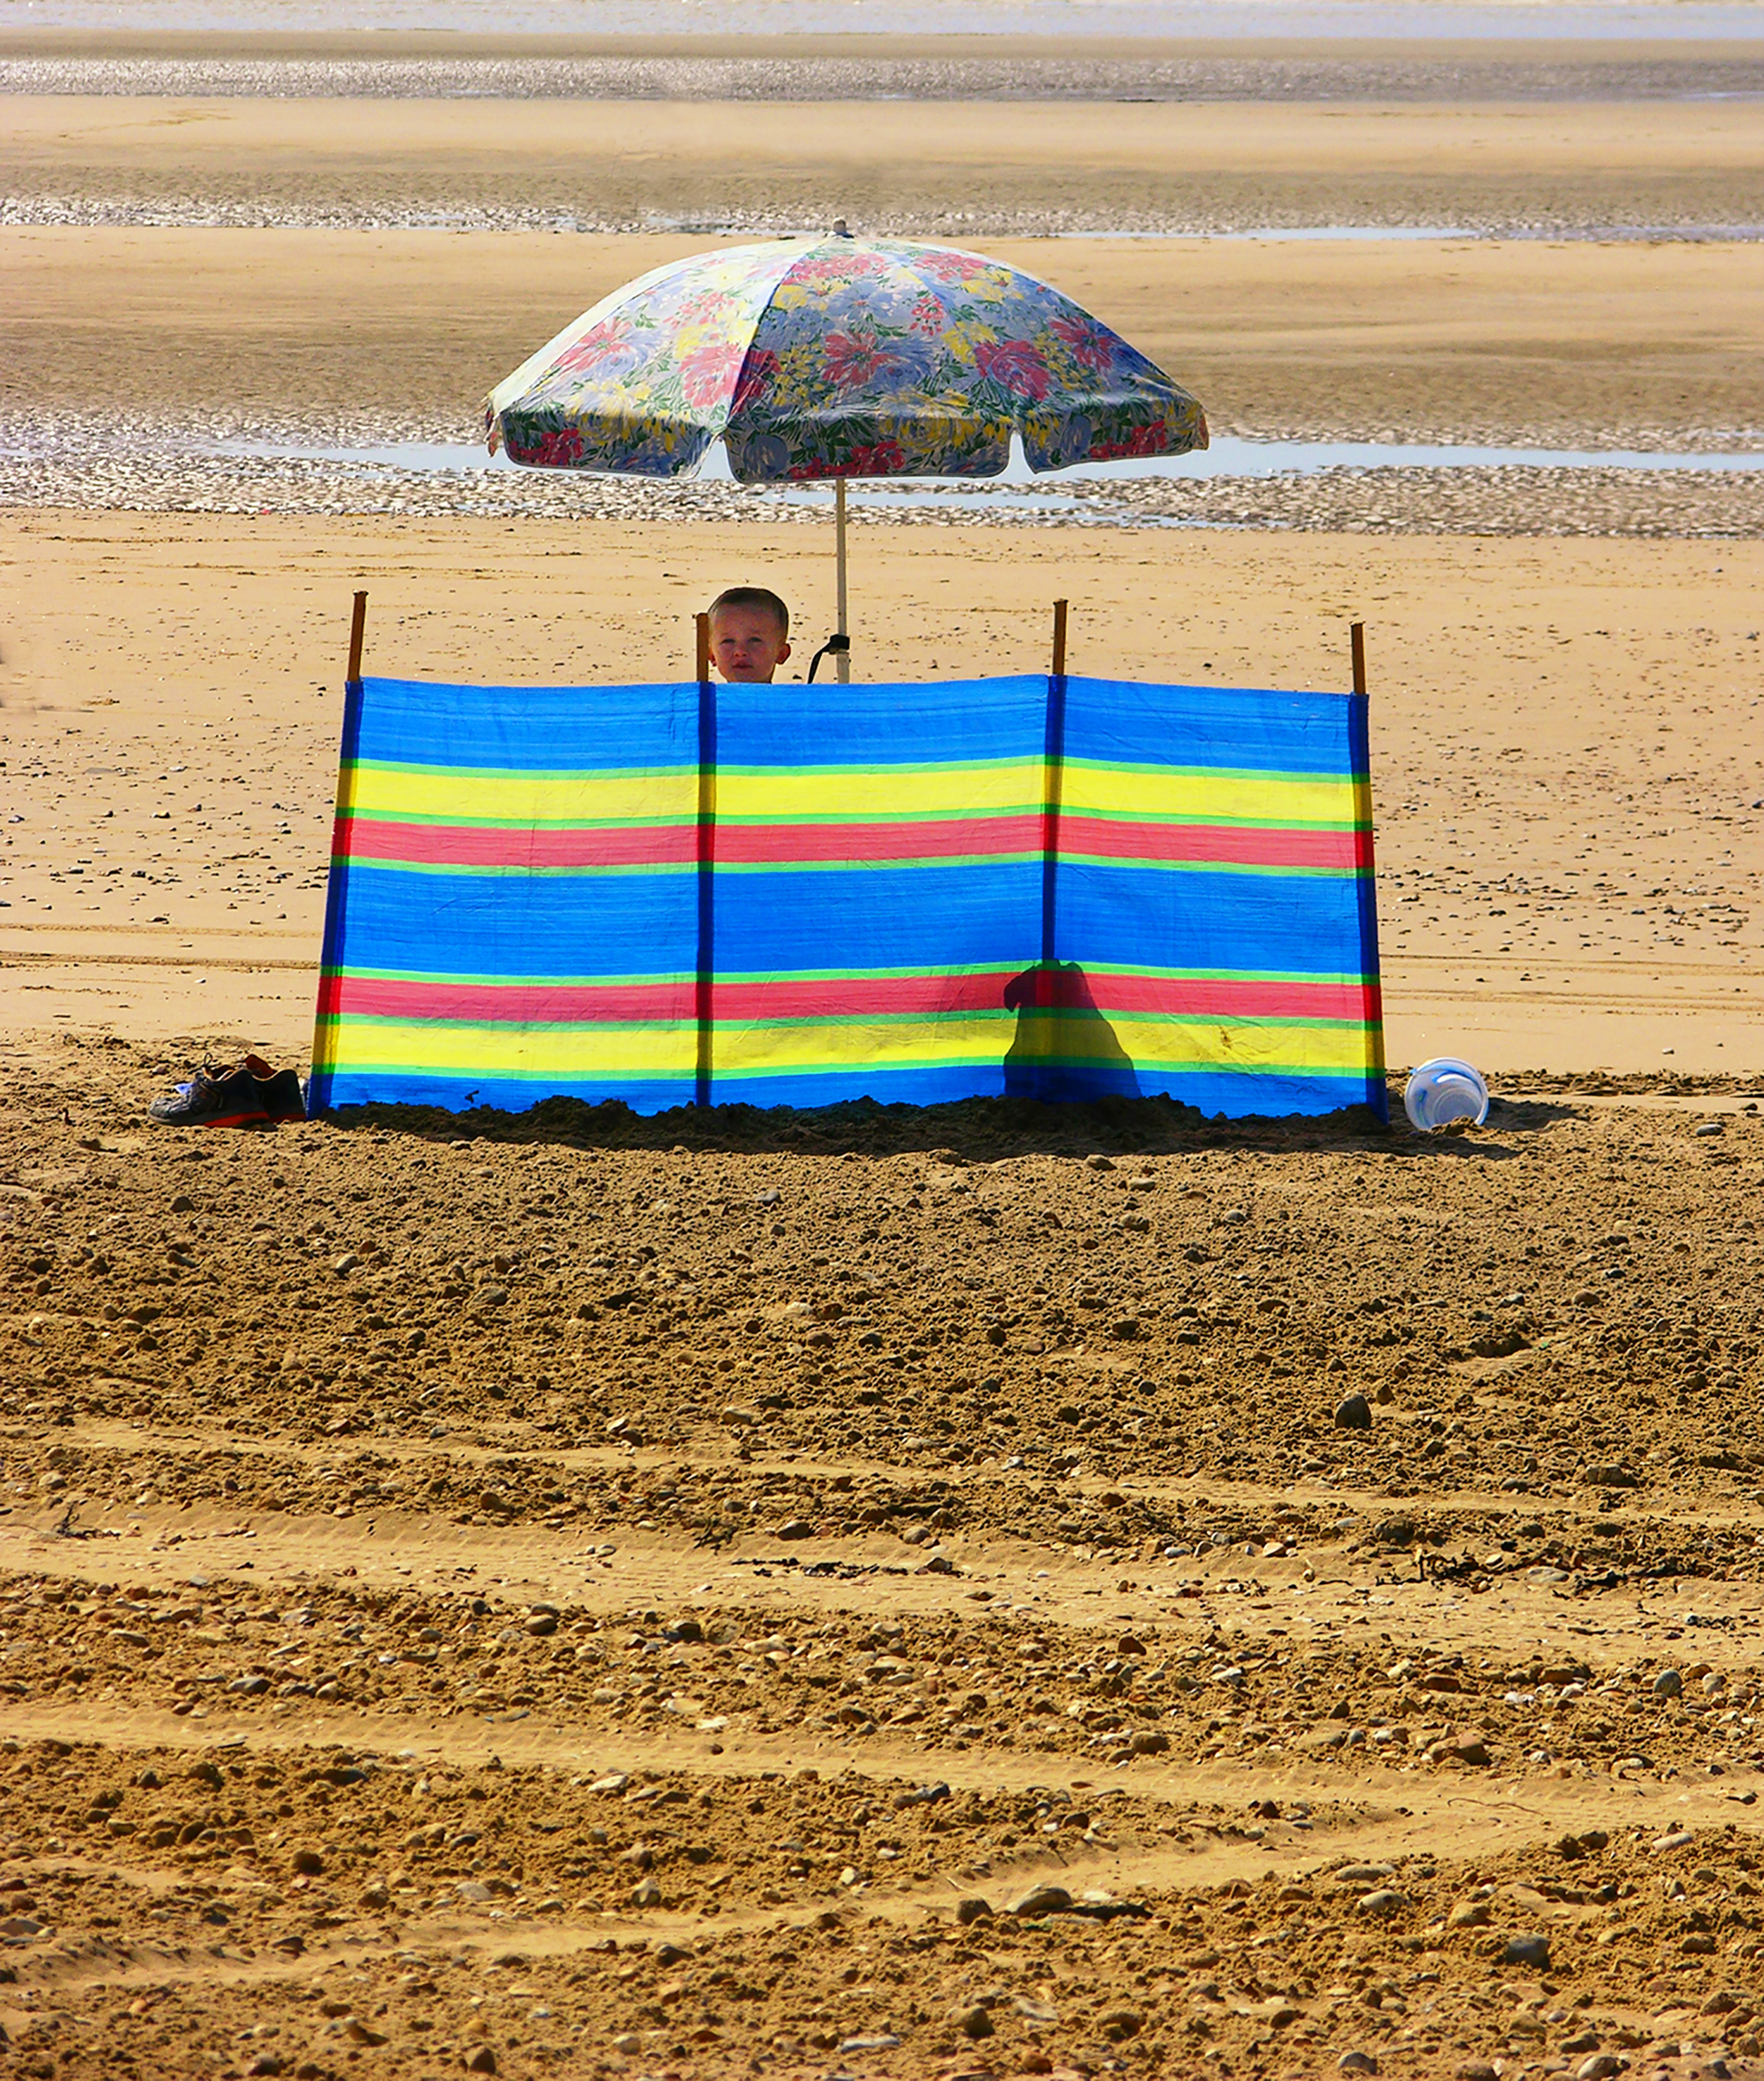 'Umbrella', Camber Sands